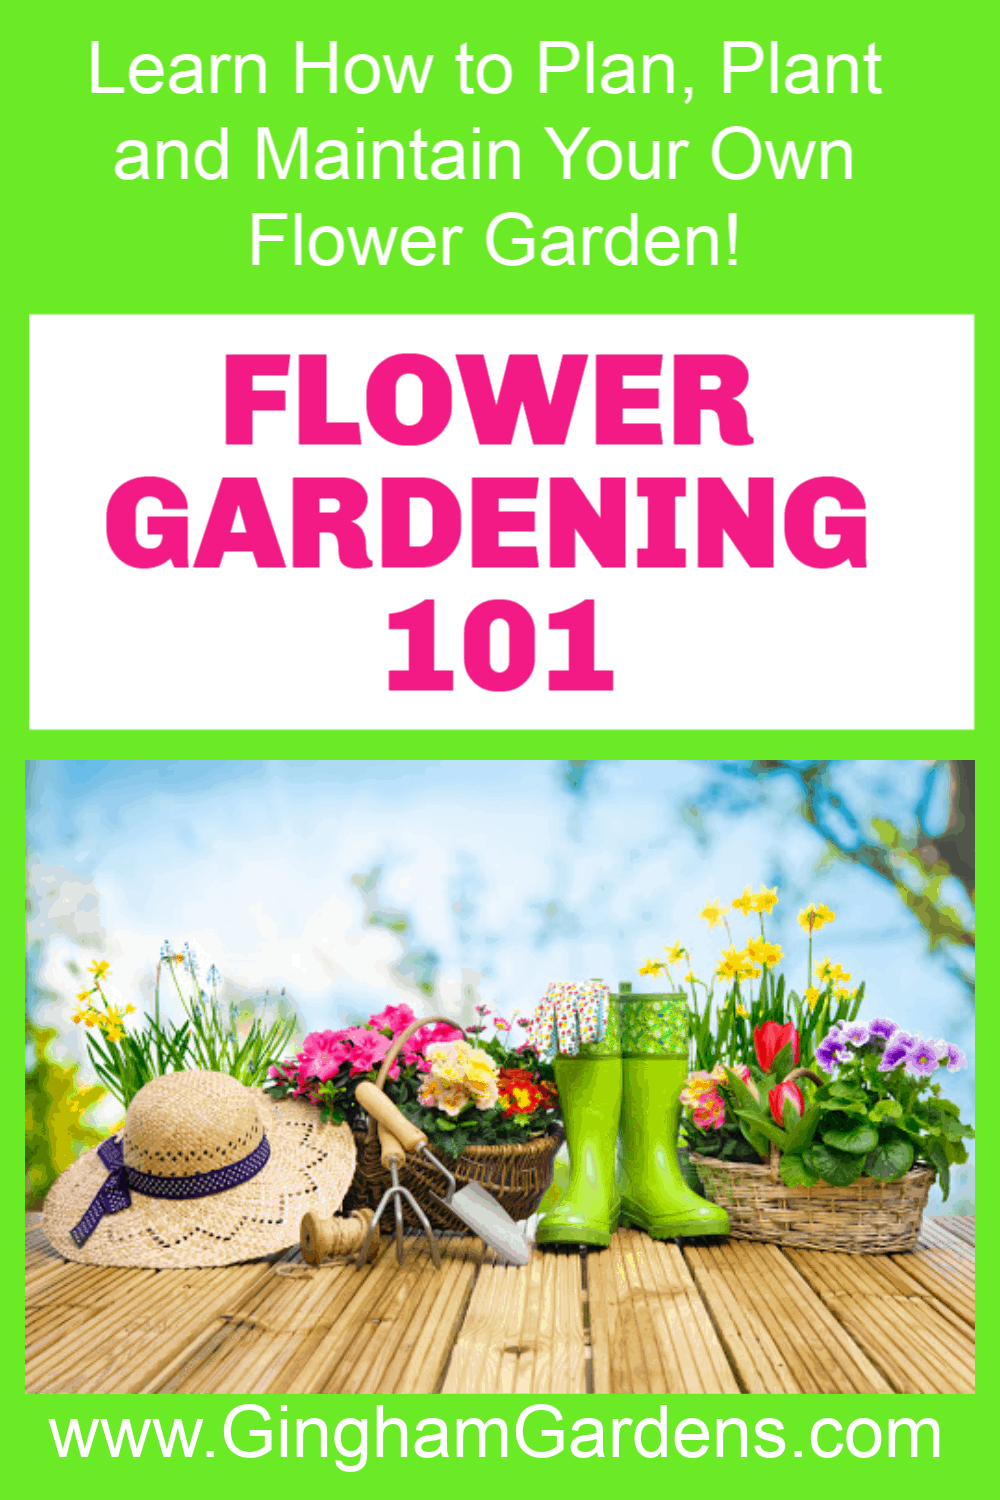 Flower Gardening Image with Text Overlay Flower Gardening 101